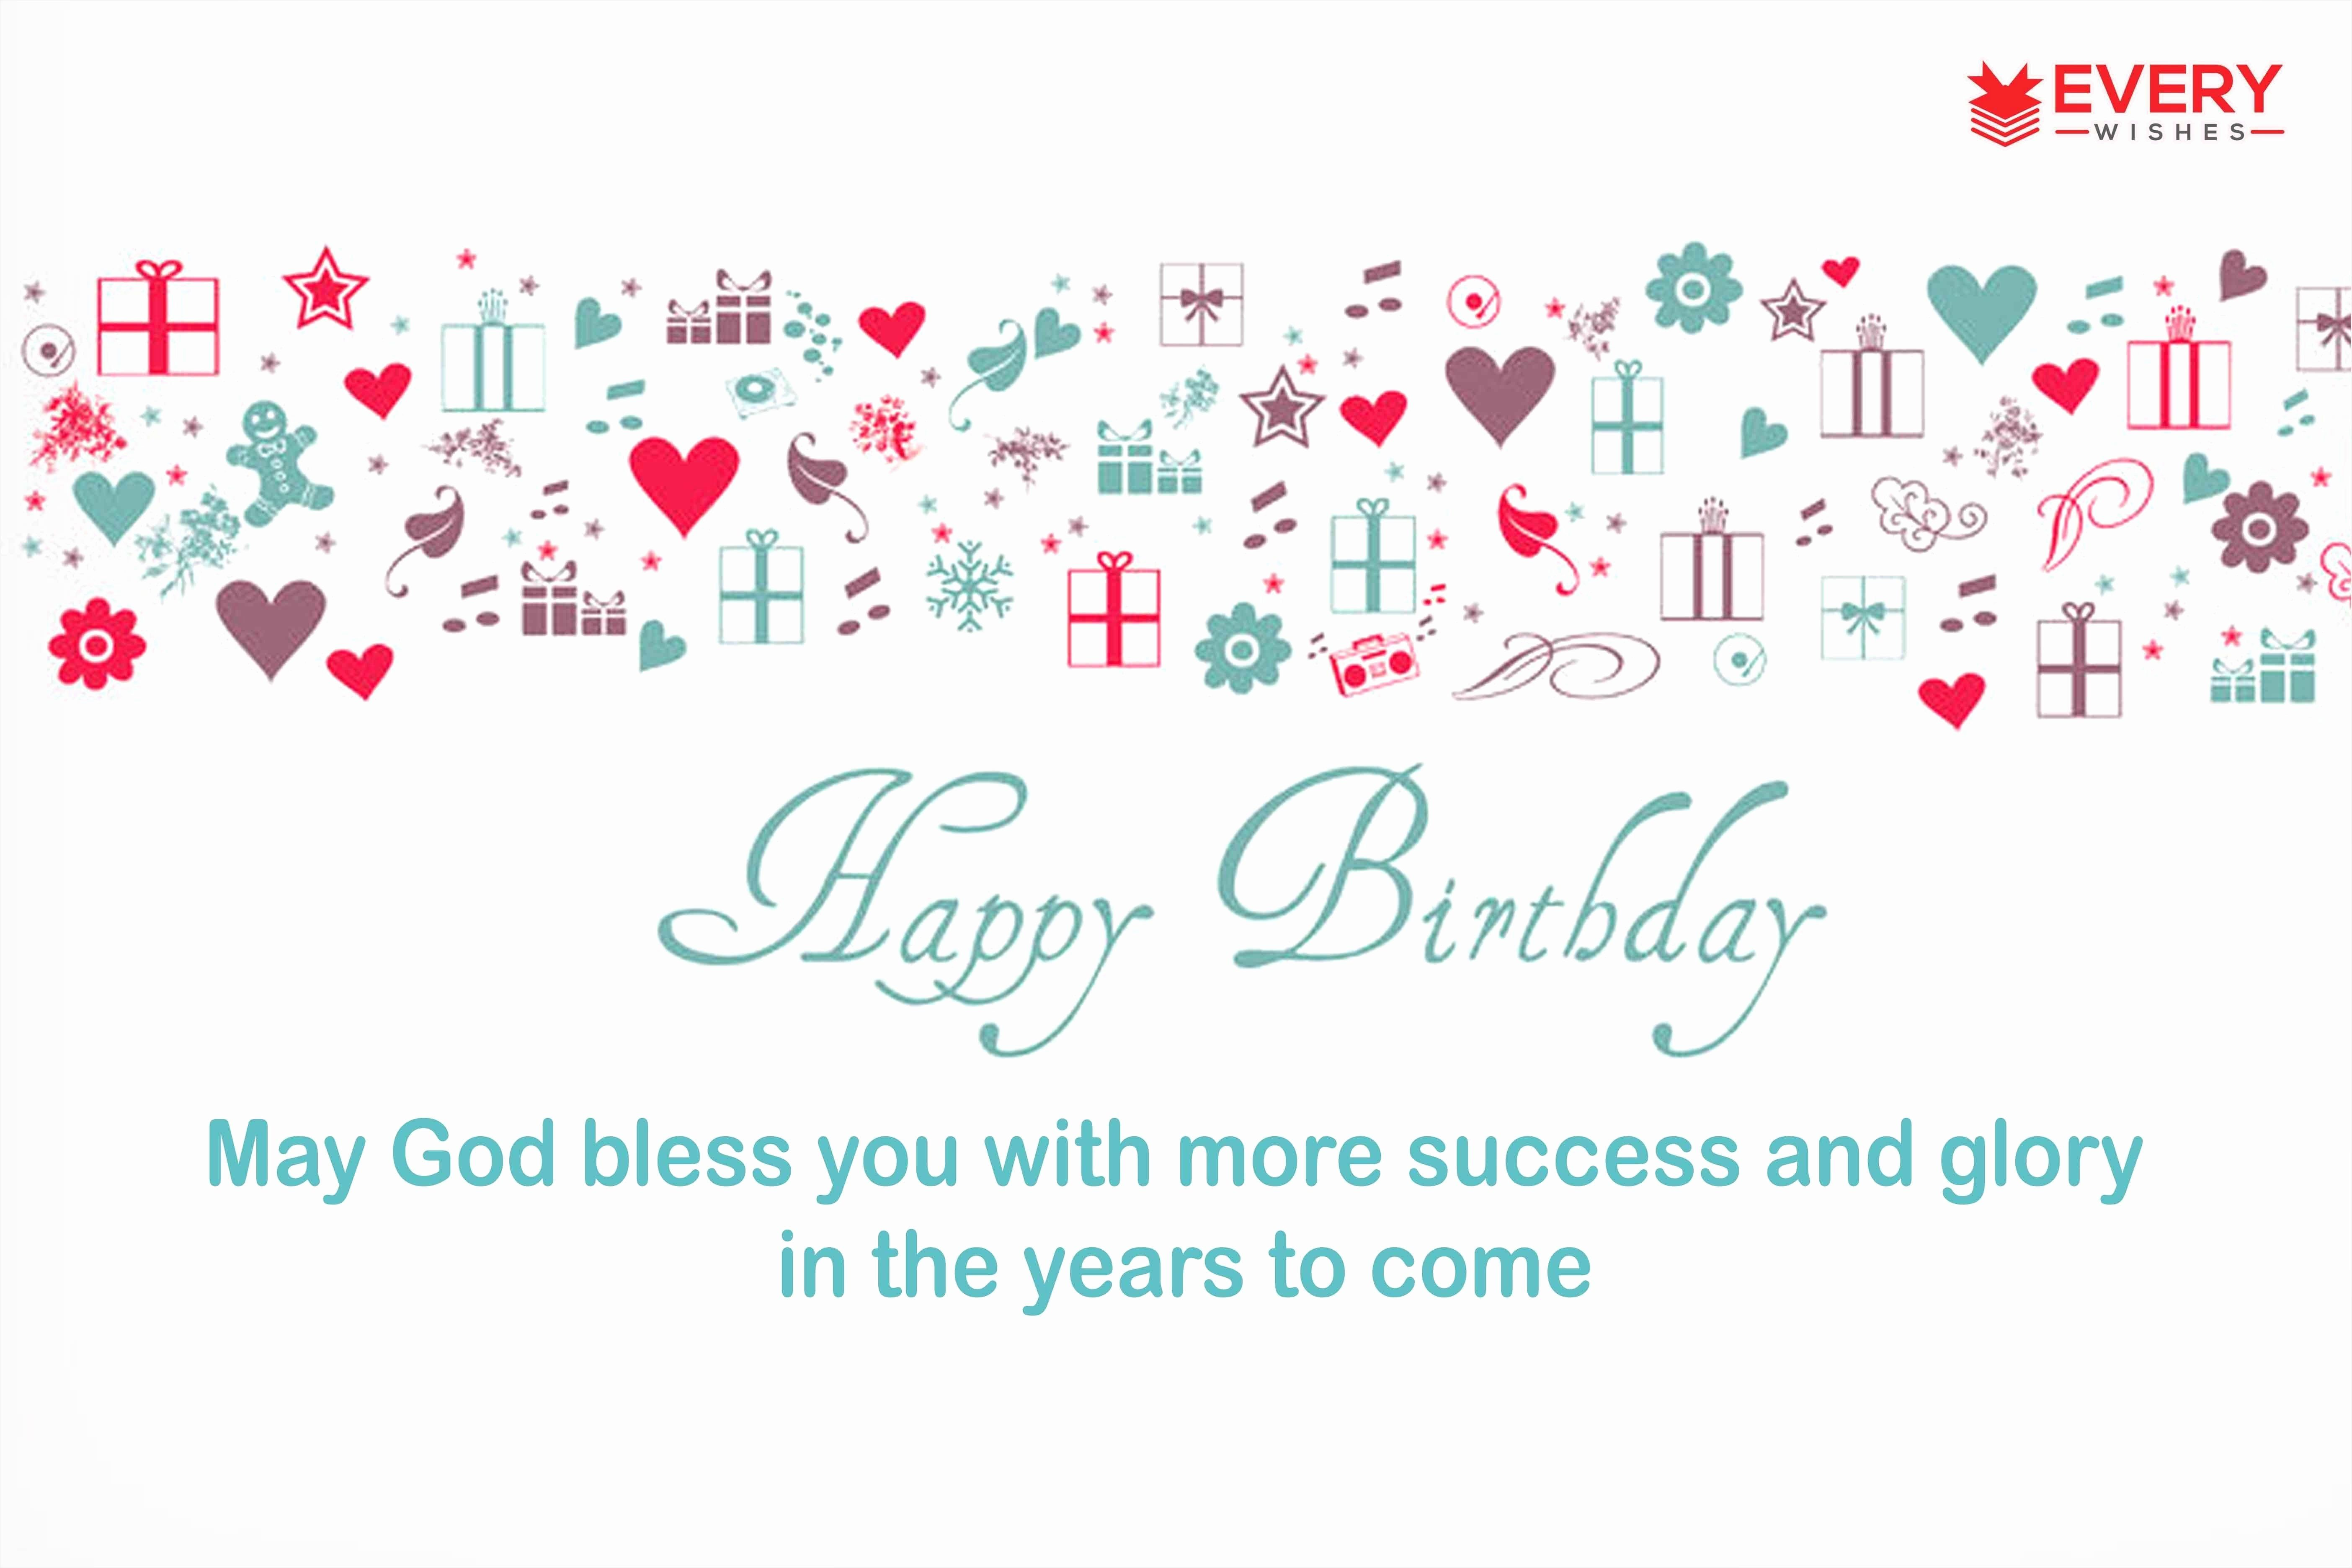 Happy Birthday 21st Images Elegant Happy 21st Birthday Christian Free Blessing Brother Message Happy 21st Birthday Boss Birthday Quotes Birthday Quotes Funny